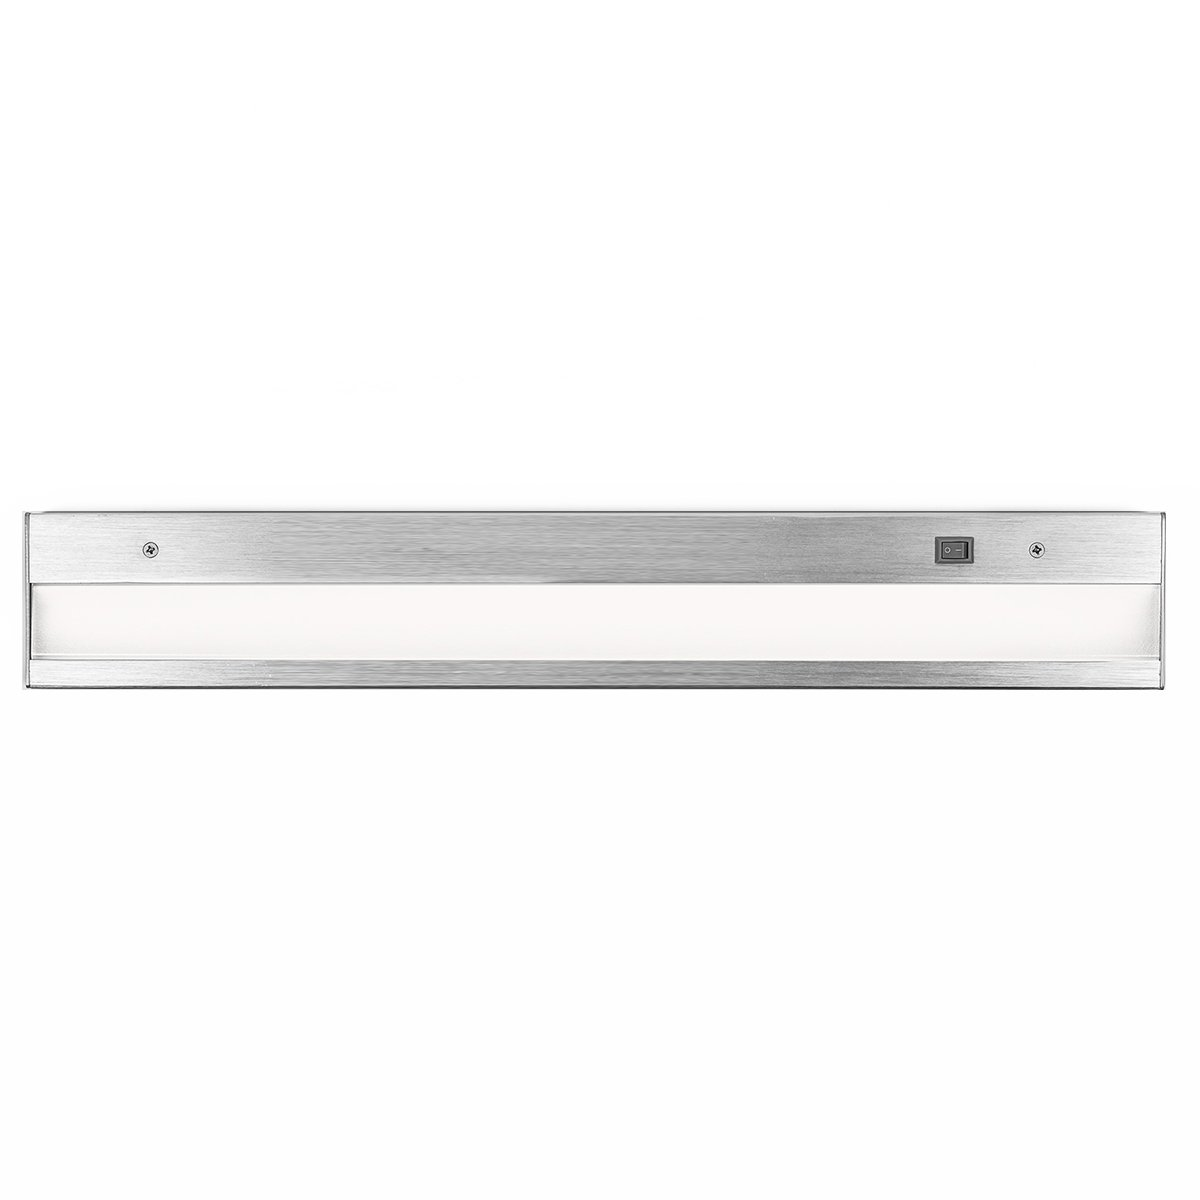 WAC Lighting BA-ACLED18-930-AL Contemporary LedME PRO ACLED Bar Light